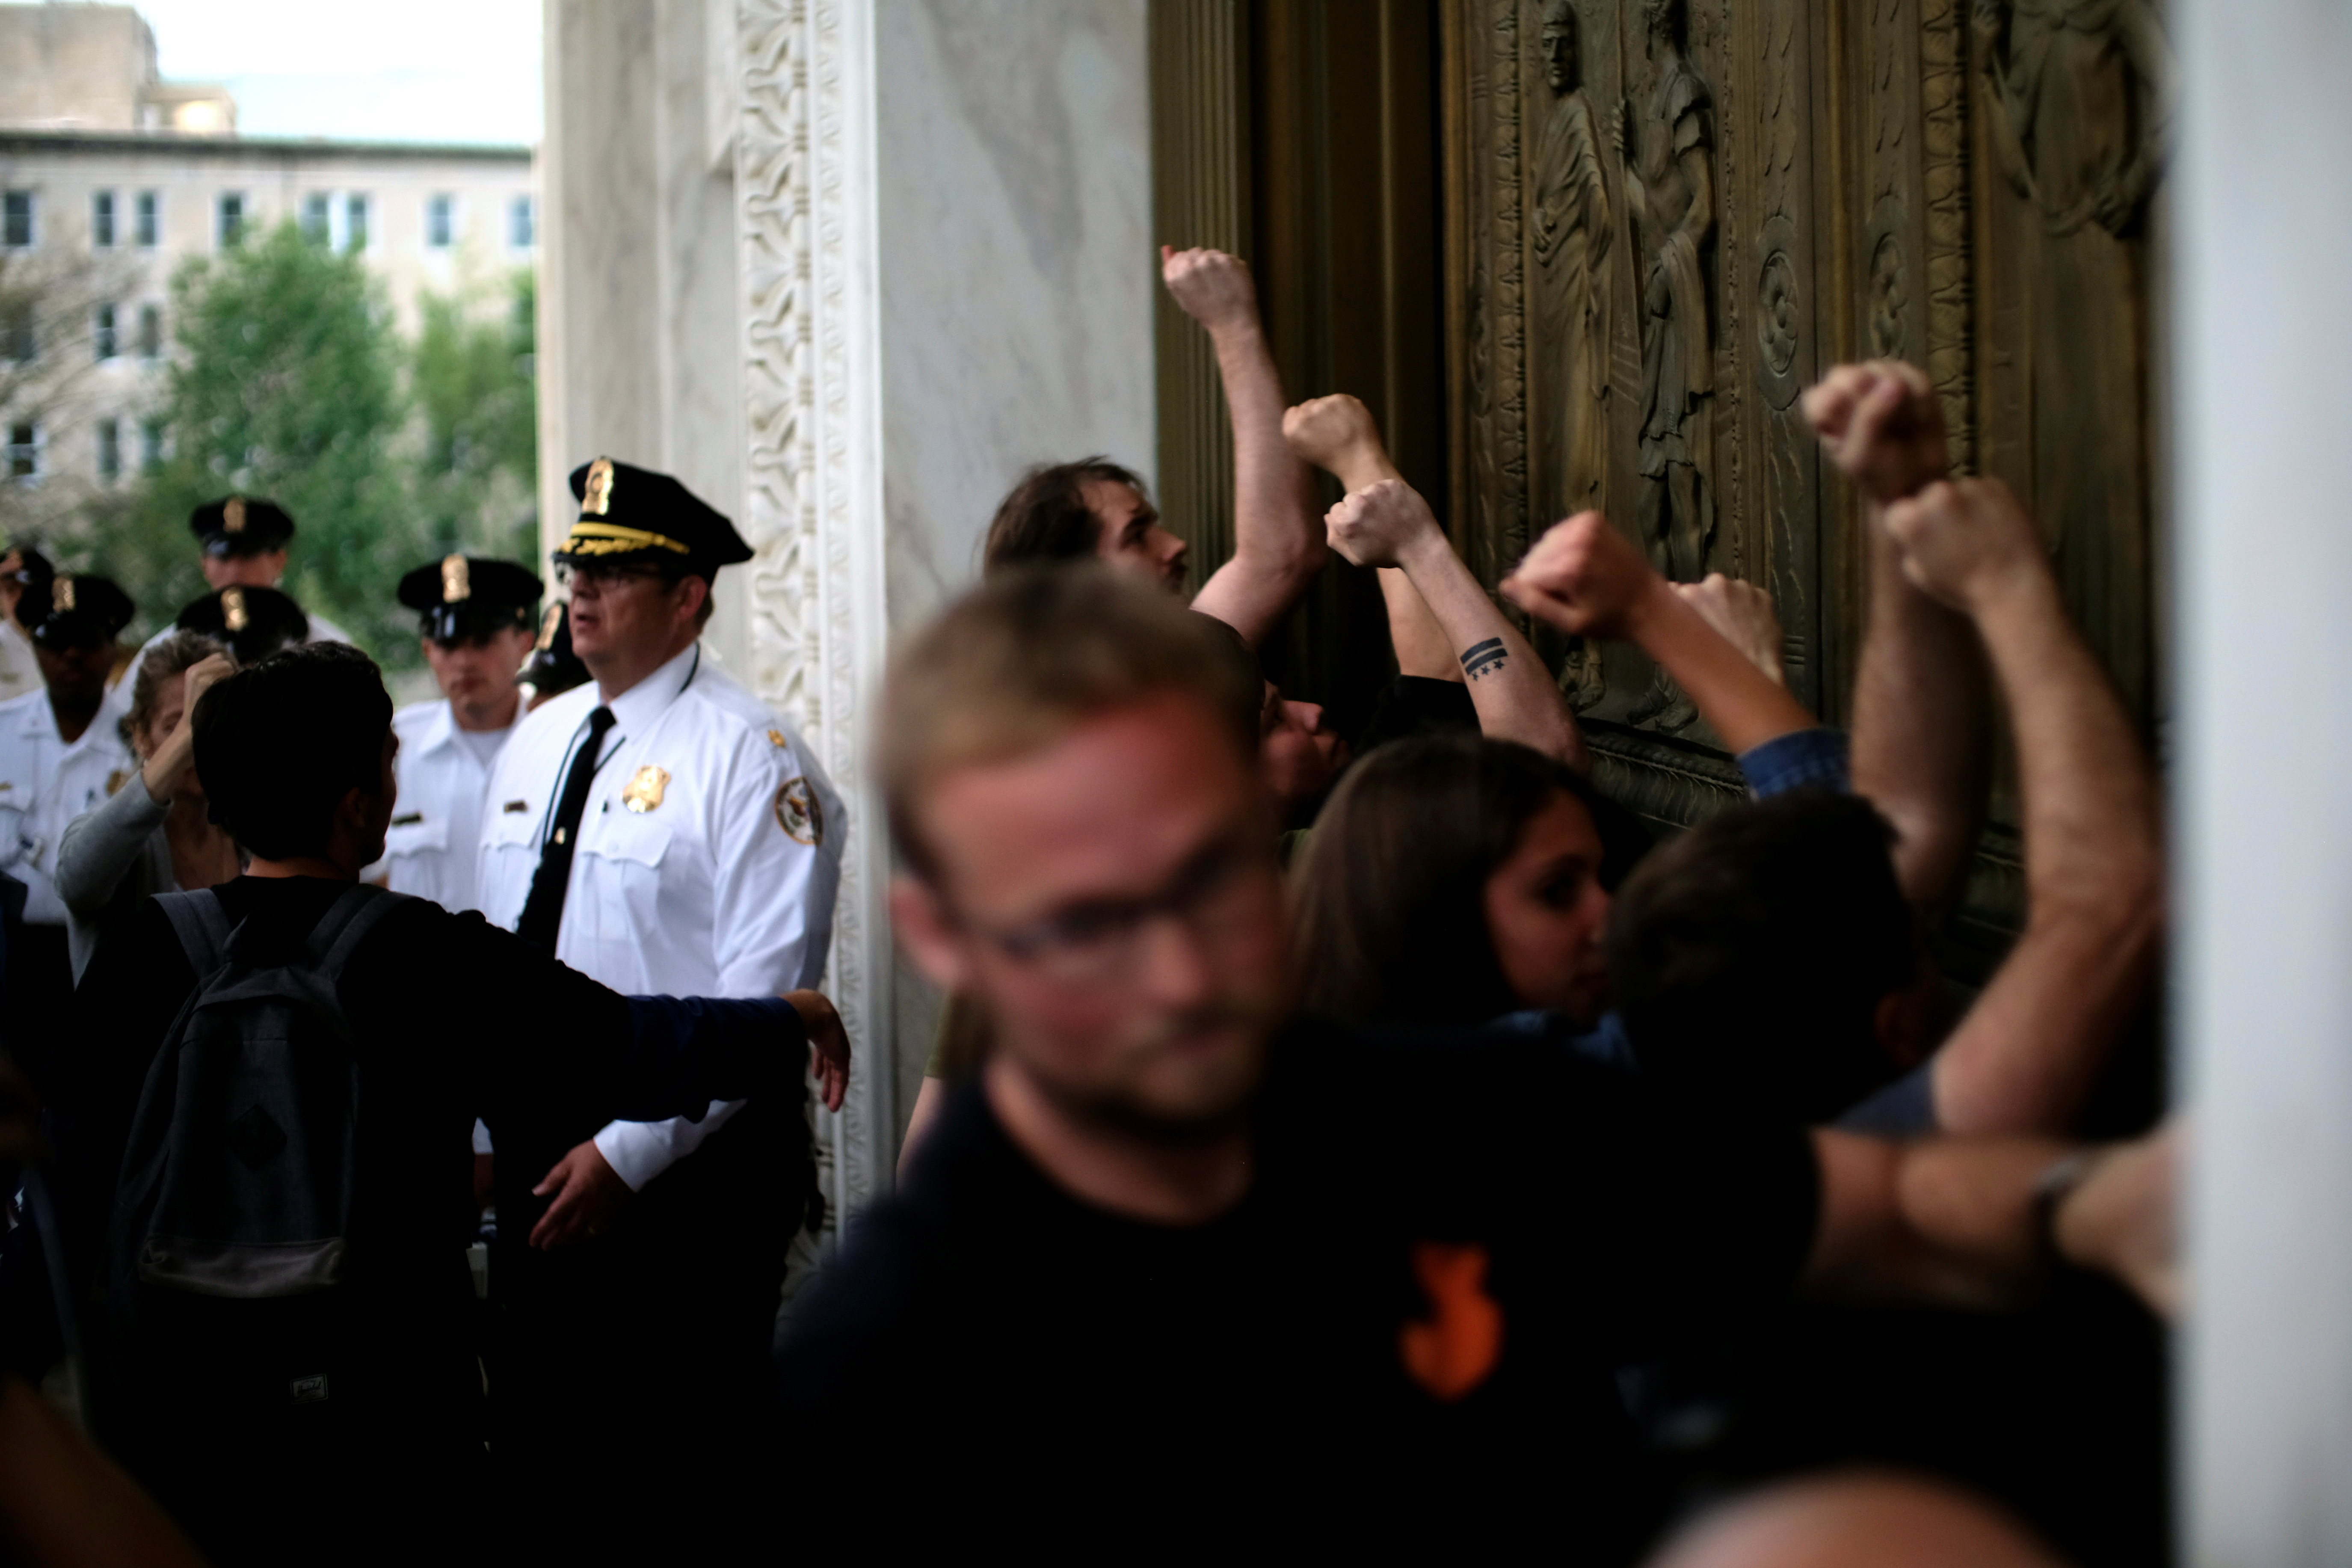 Protesters bang on the doors of the U.S. Supreme Court after storming the steps as Brett Kavanaugh is sworn in as an Associate Justice of the court in Washington, U.S., October 6, 2018. REUTERS/James Lawler Duggan